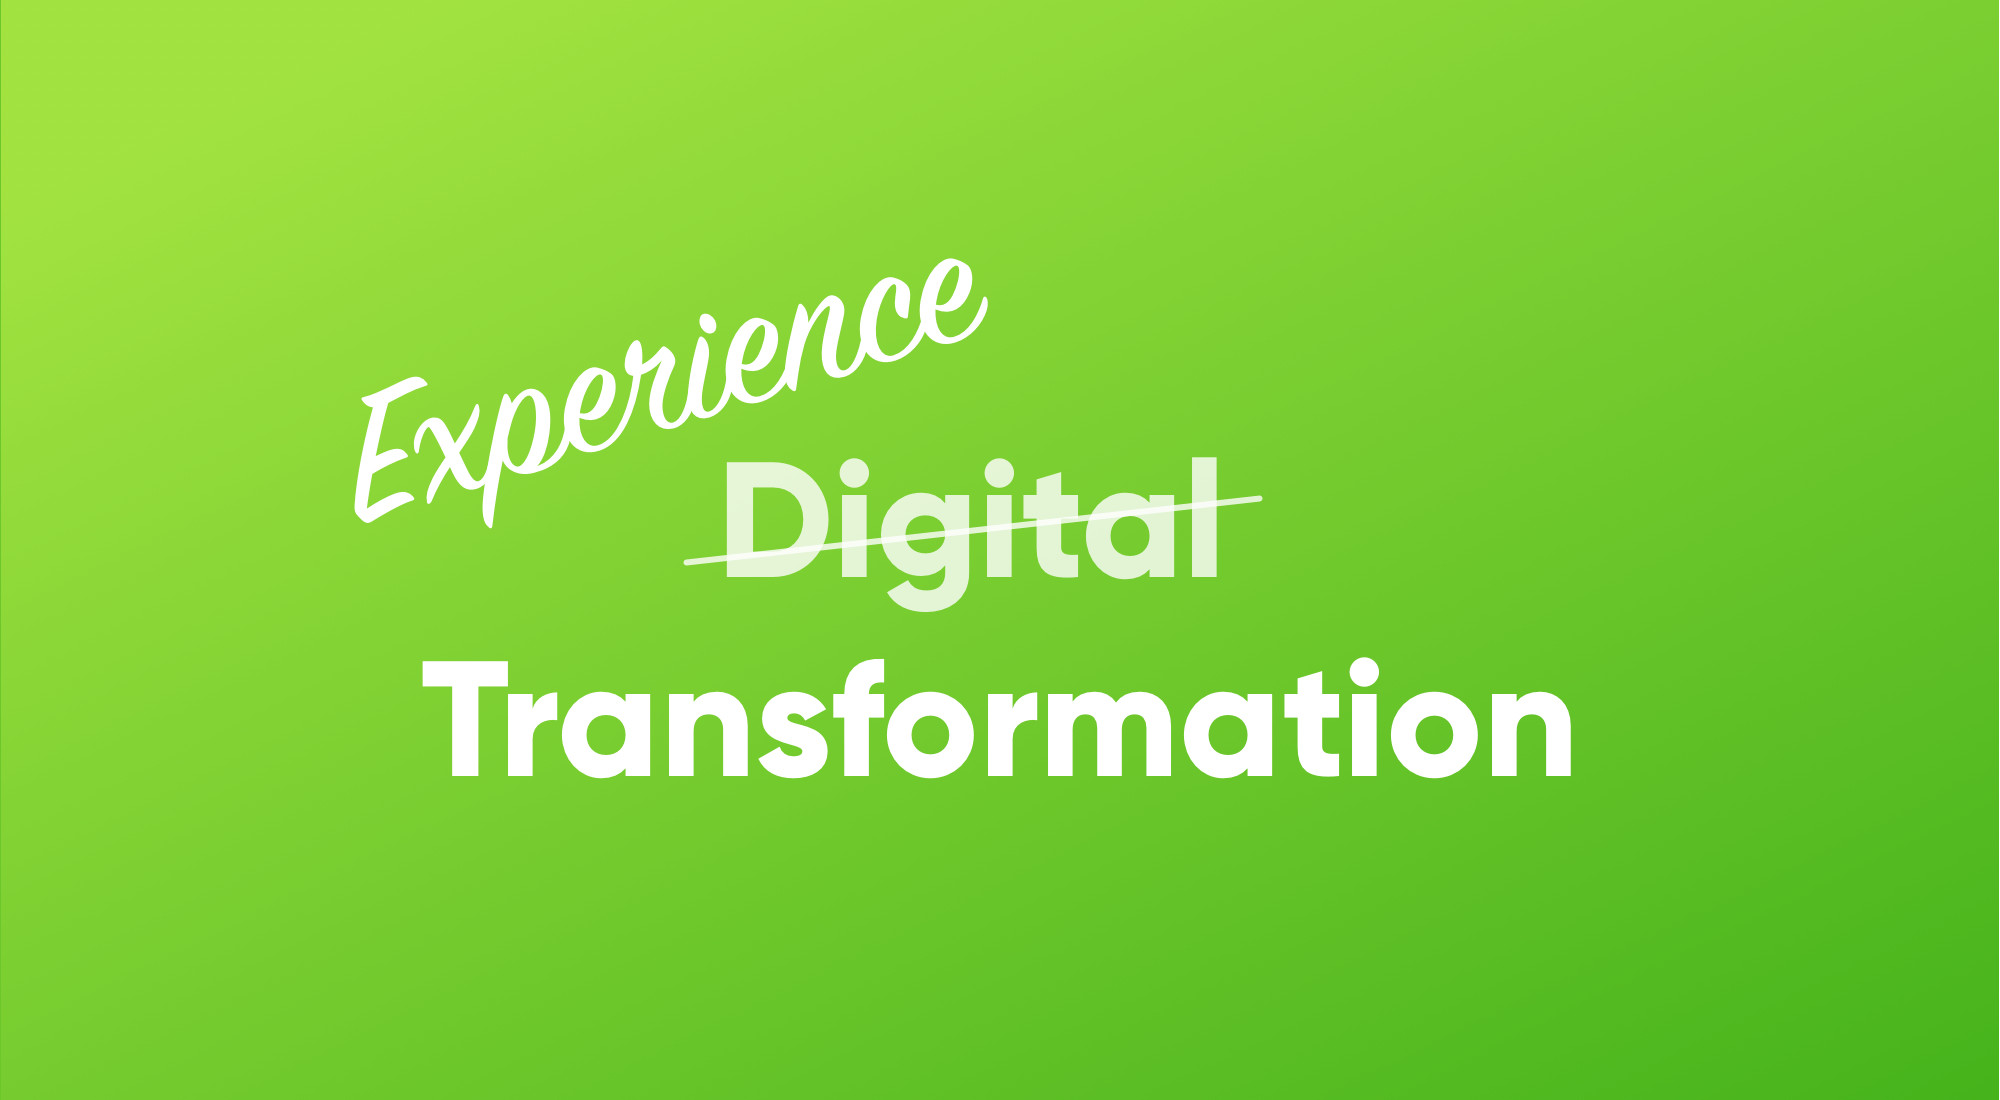 🎧 Banking Digital Transformation Fails Without User Experience Transformation